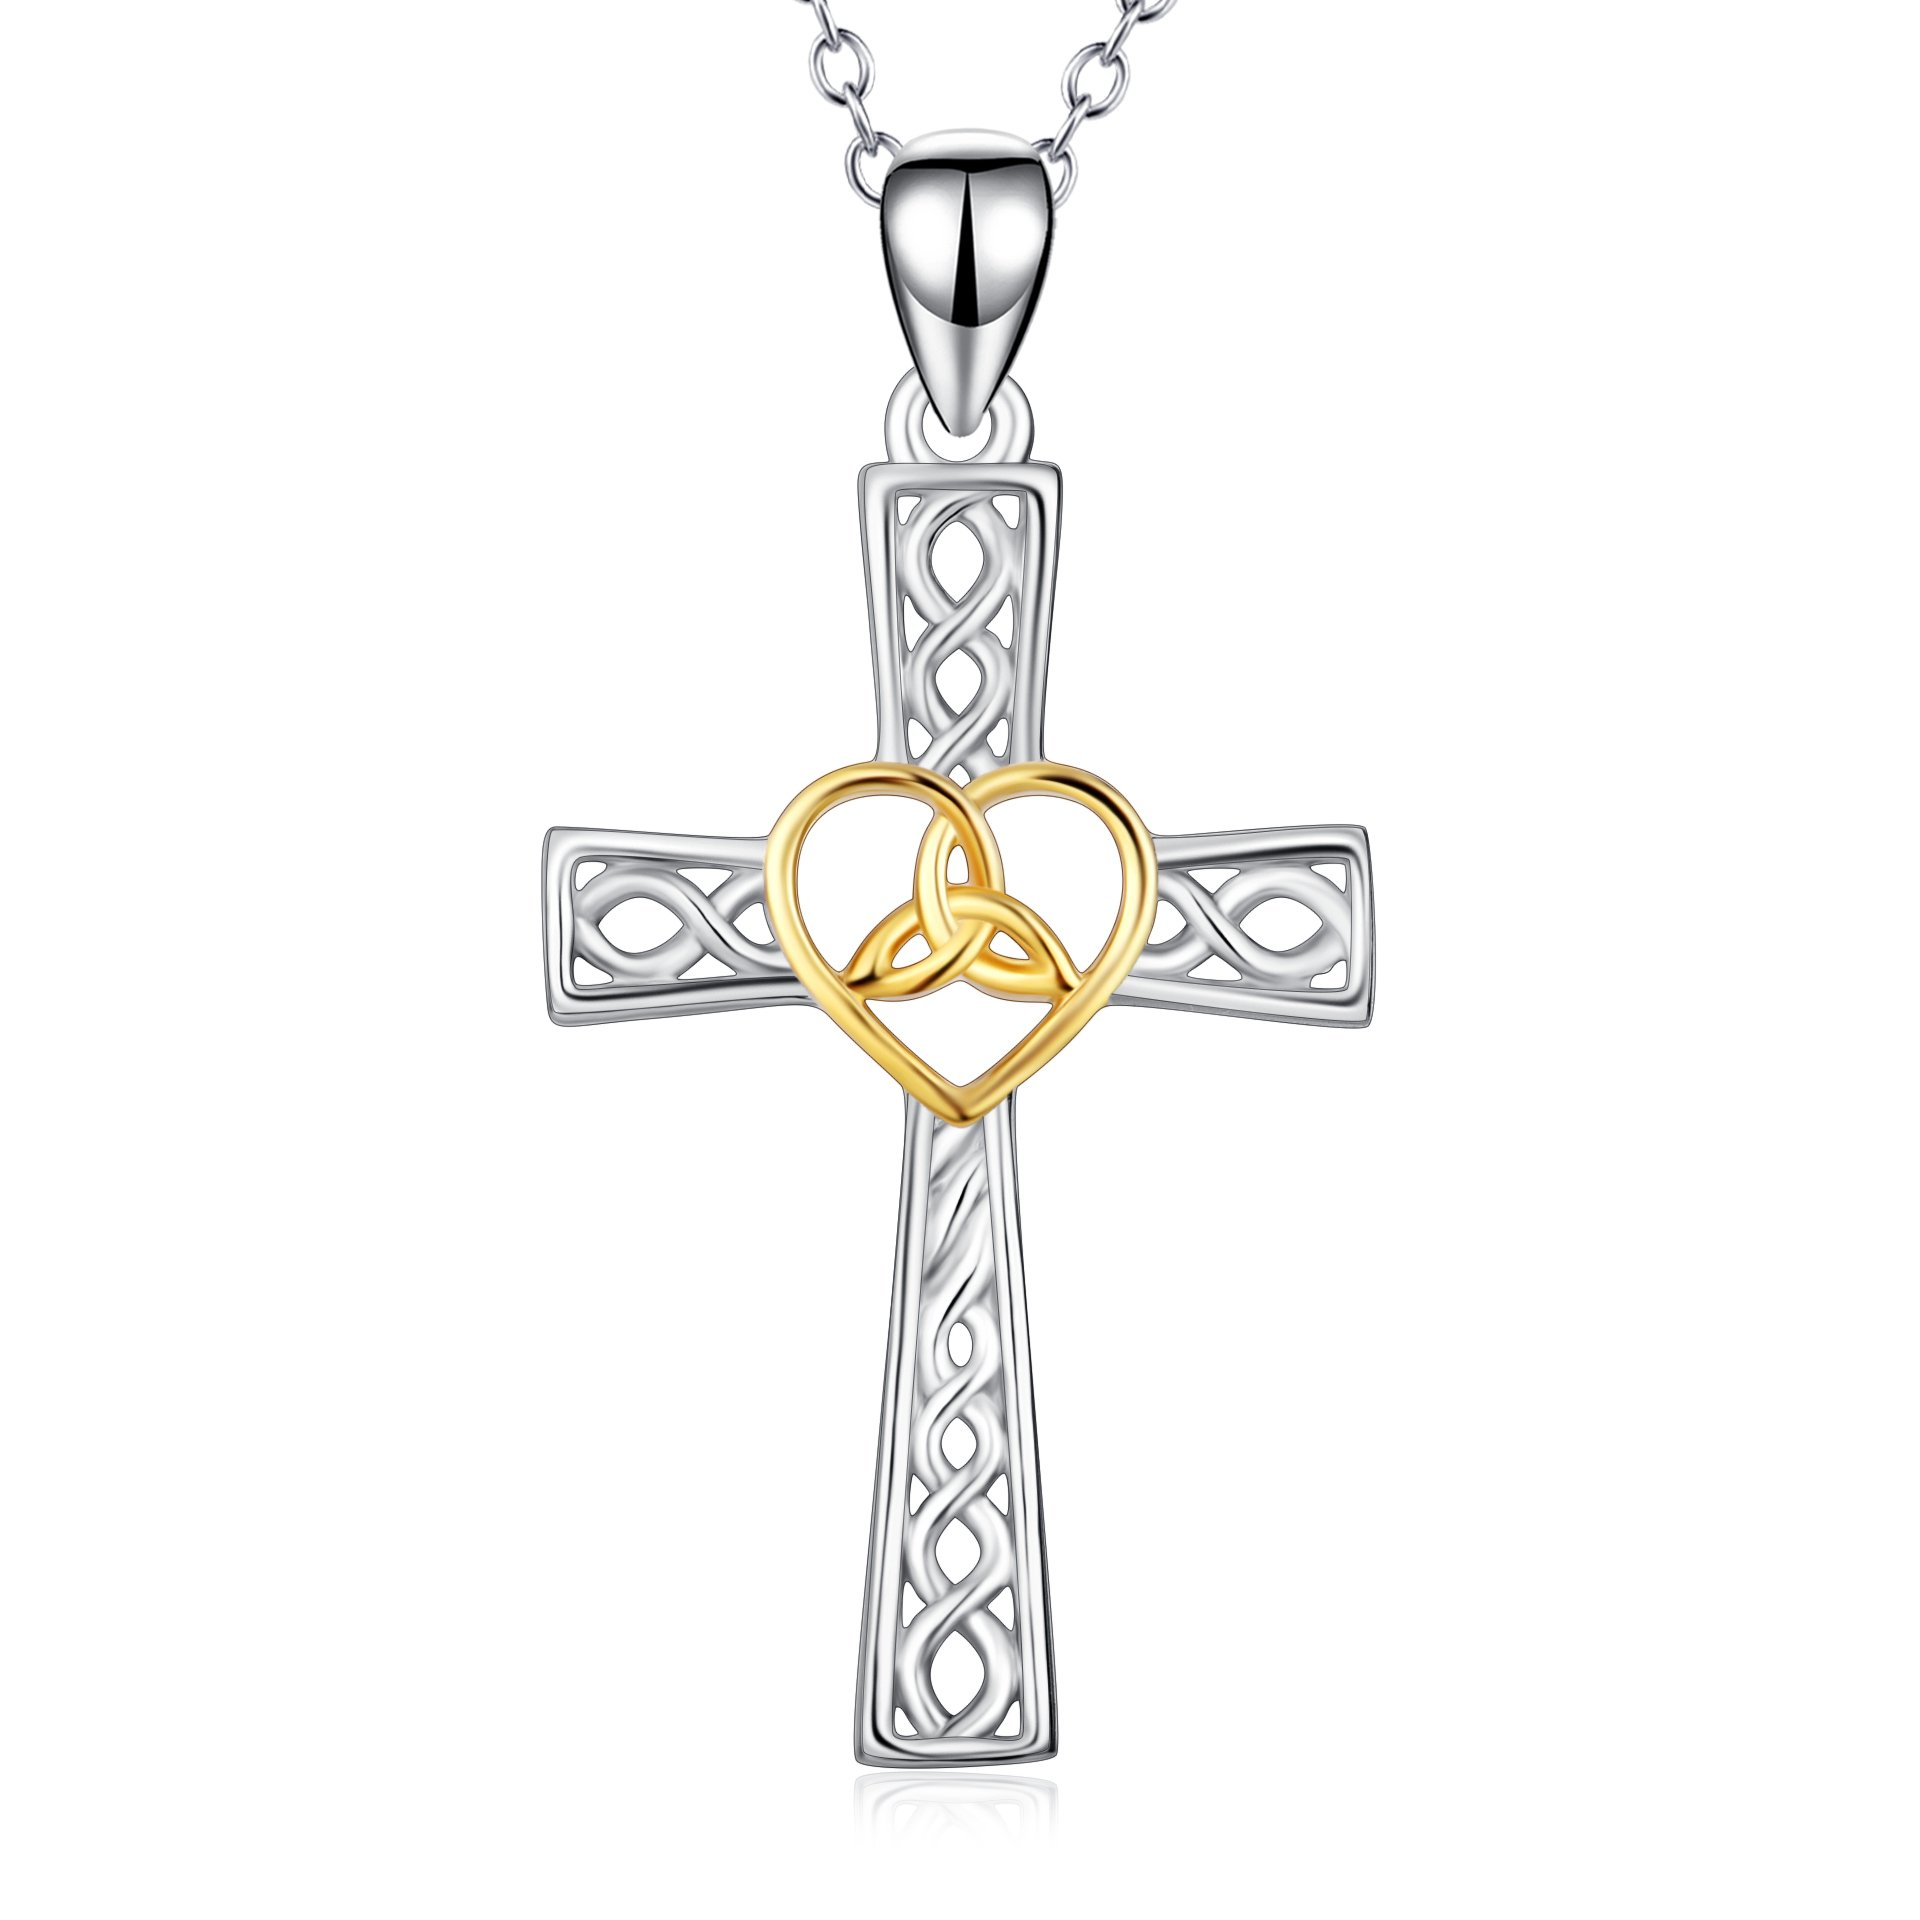 YFN Women Religious Jewelry 925 Sterling Silver Two-tone Eternal Love Heart Celtic Knot Cross Pendant Necklace (Cross style 1) by YFN